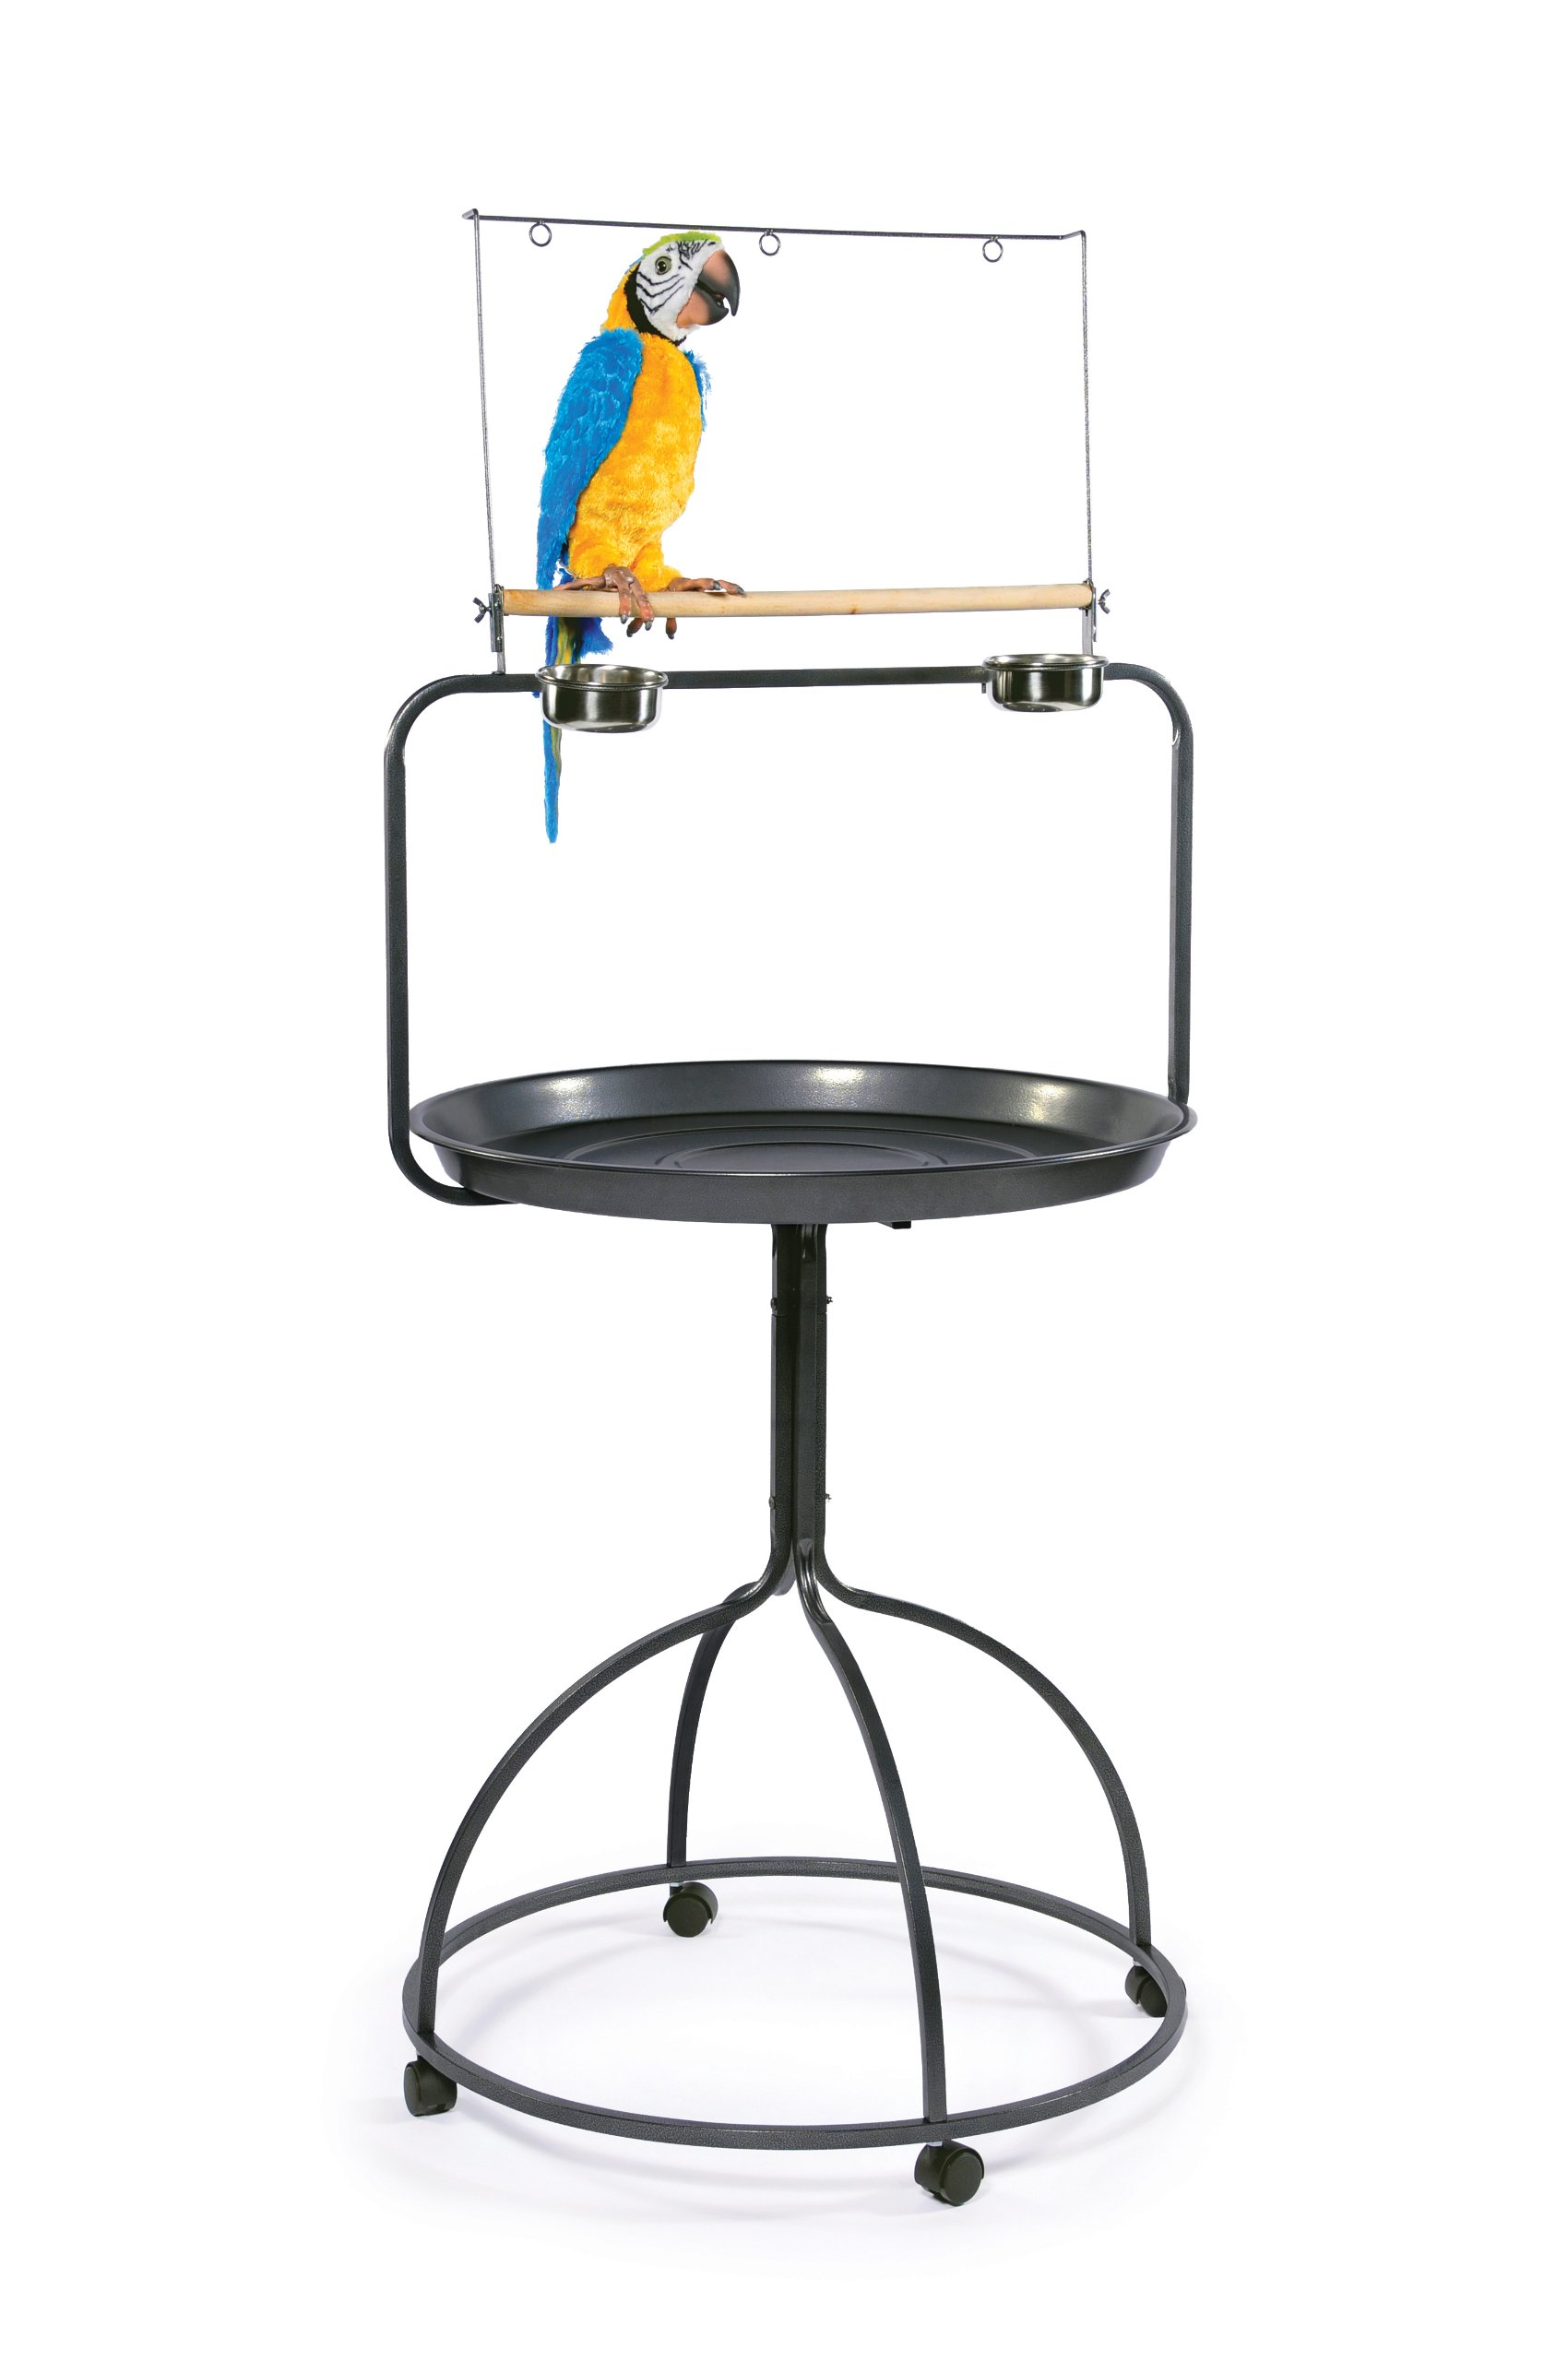 Prevue Hendryx 3183 Parrot Playstand, Round by Prevue Hendryx